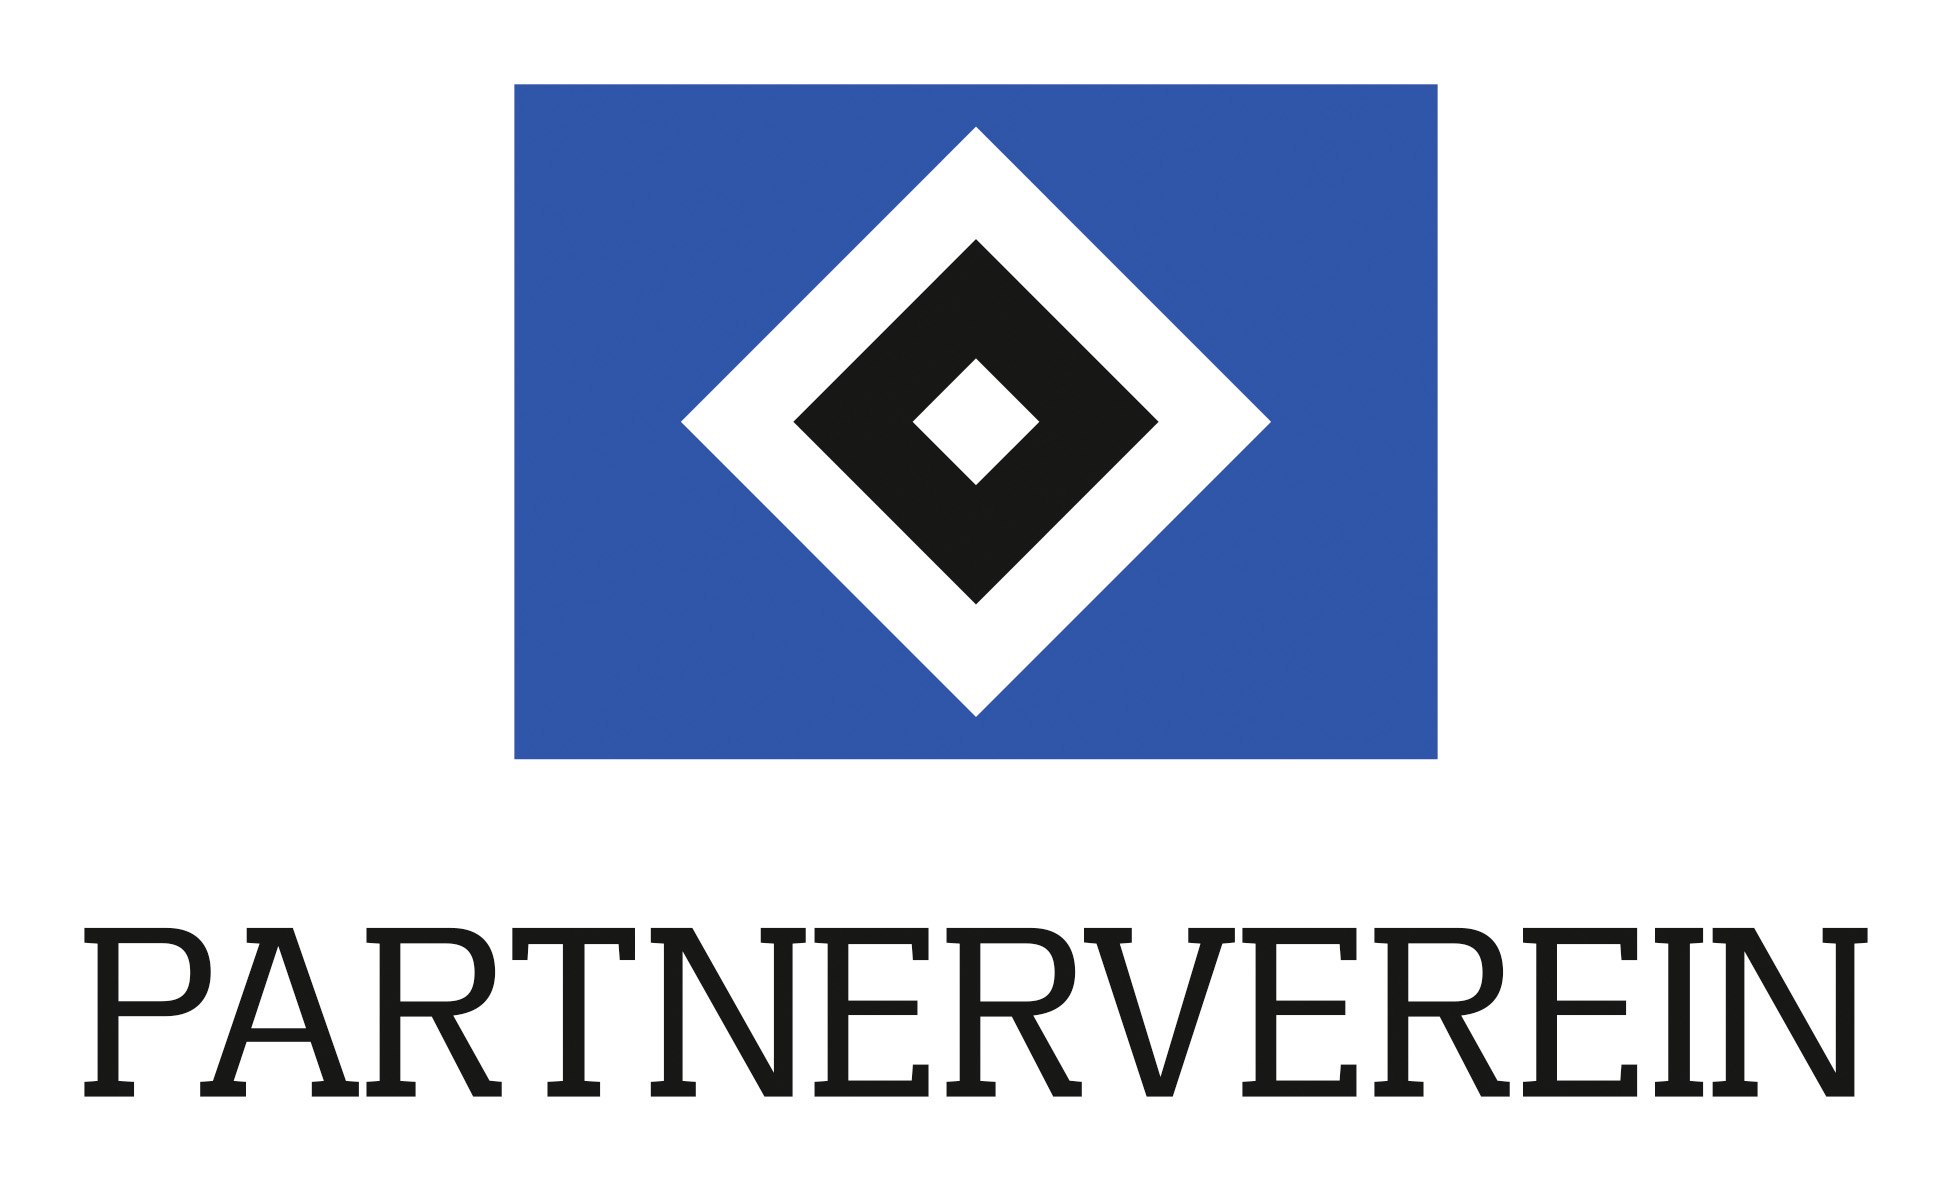 HSV Partnerverein